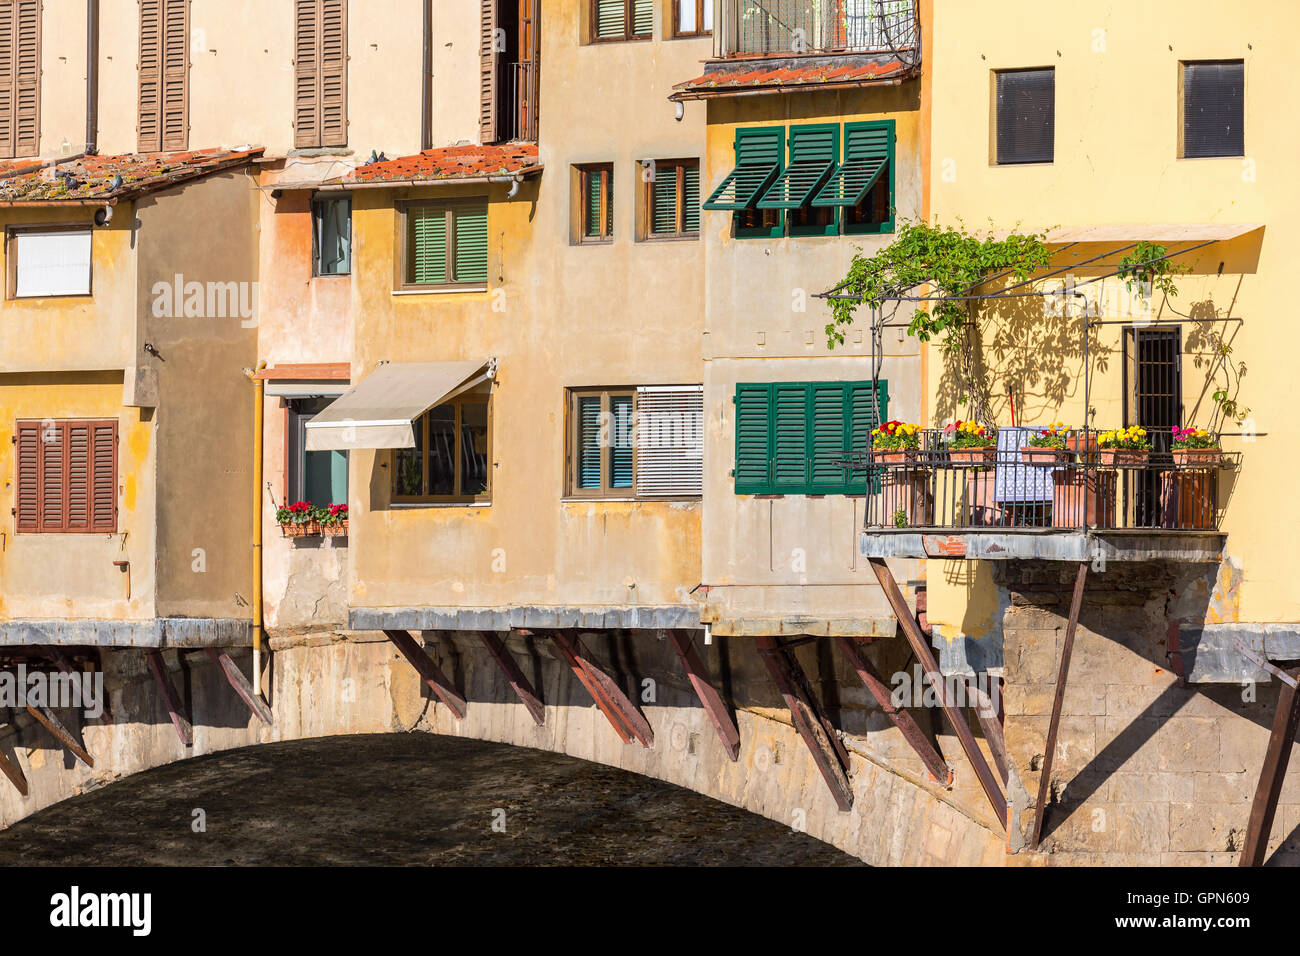 Residential building with a balcony with flowers - Stock Image